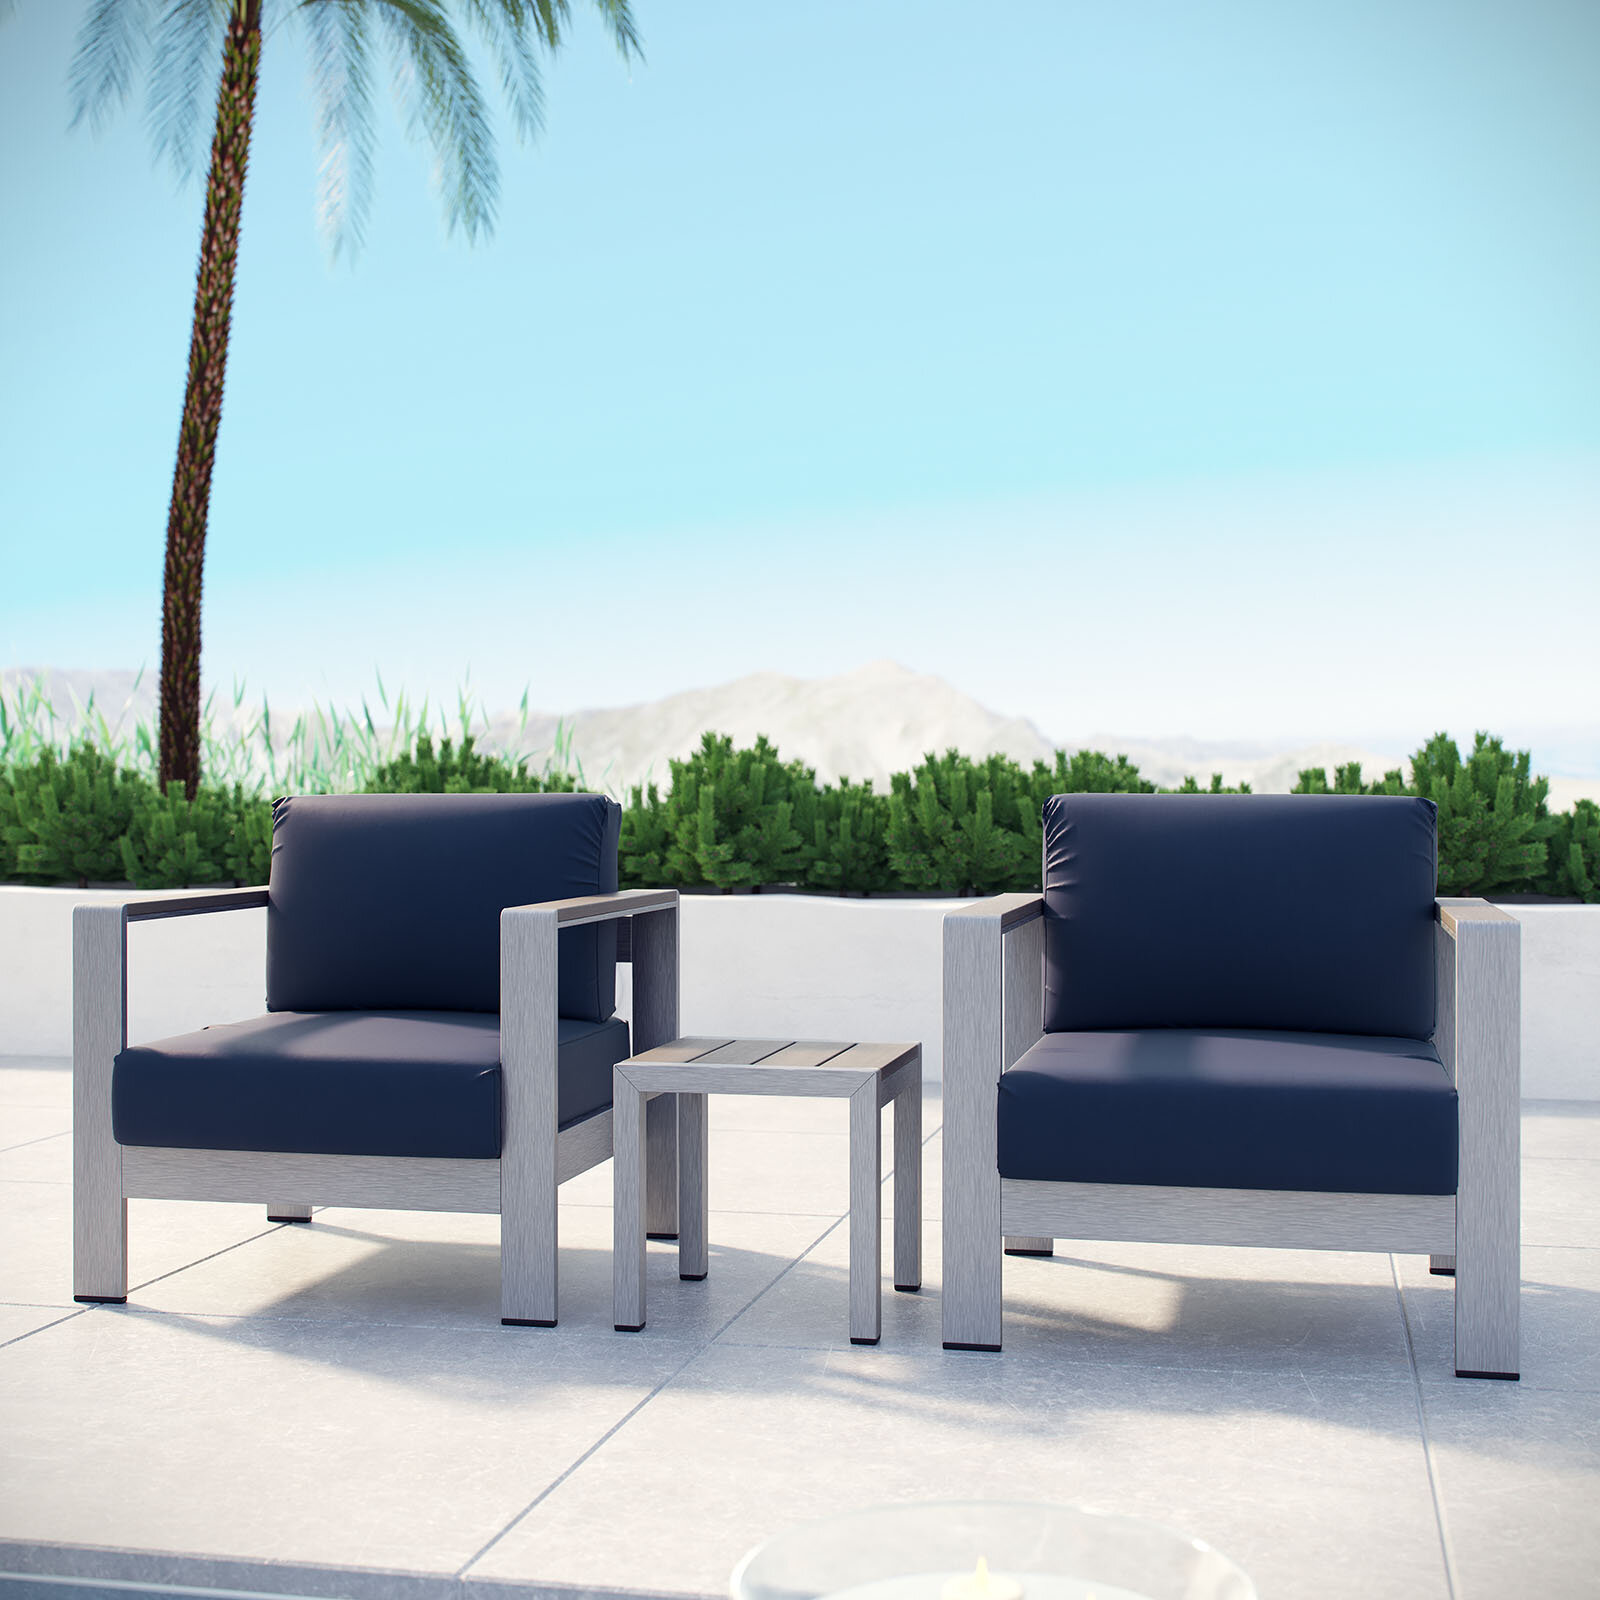 terrace sets patio furniture outdoor en depot canada categories p piece outdoors set the park sectional home